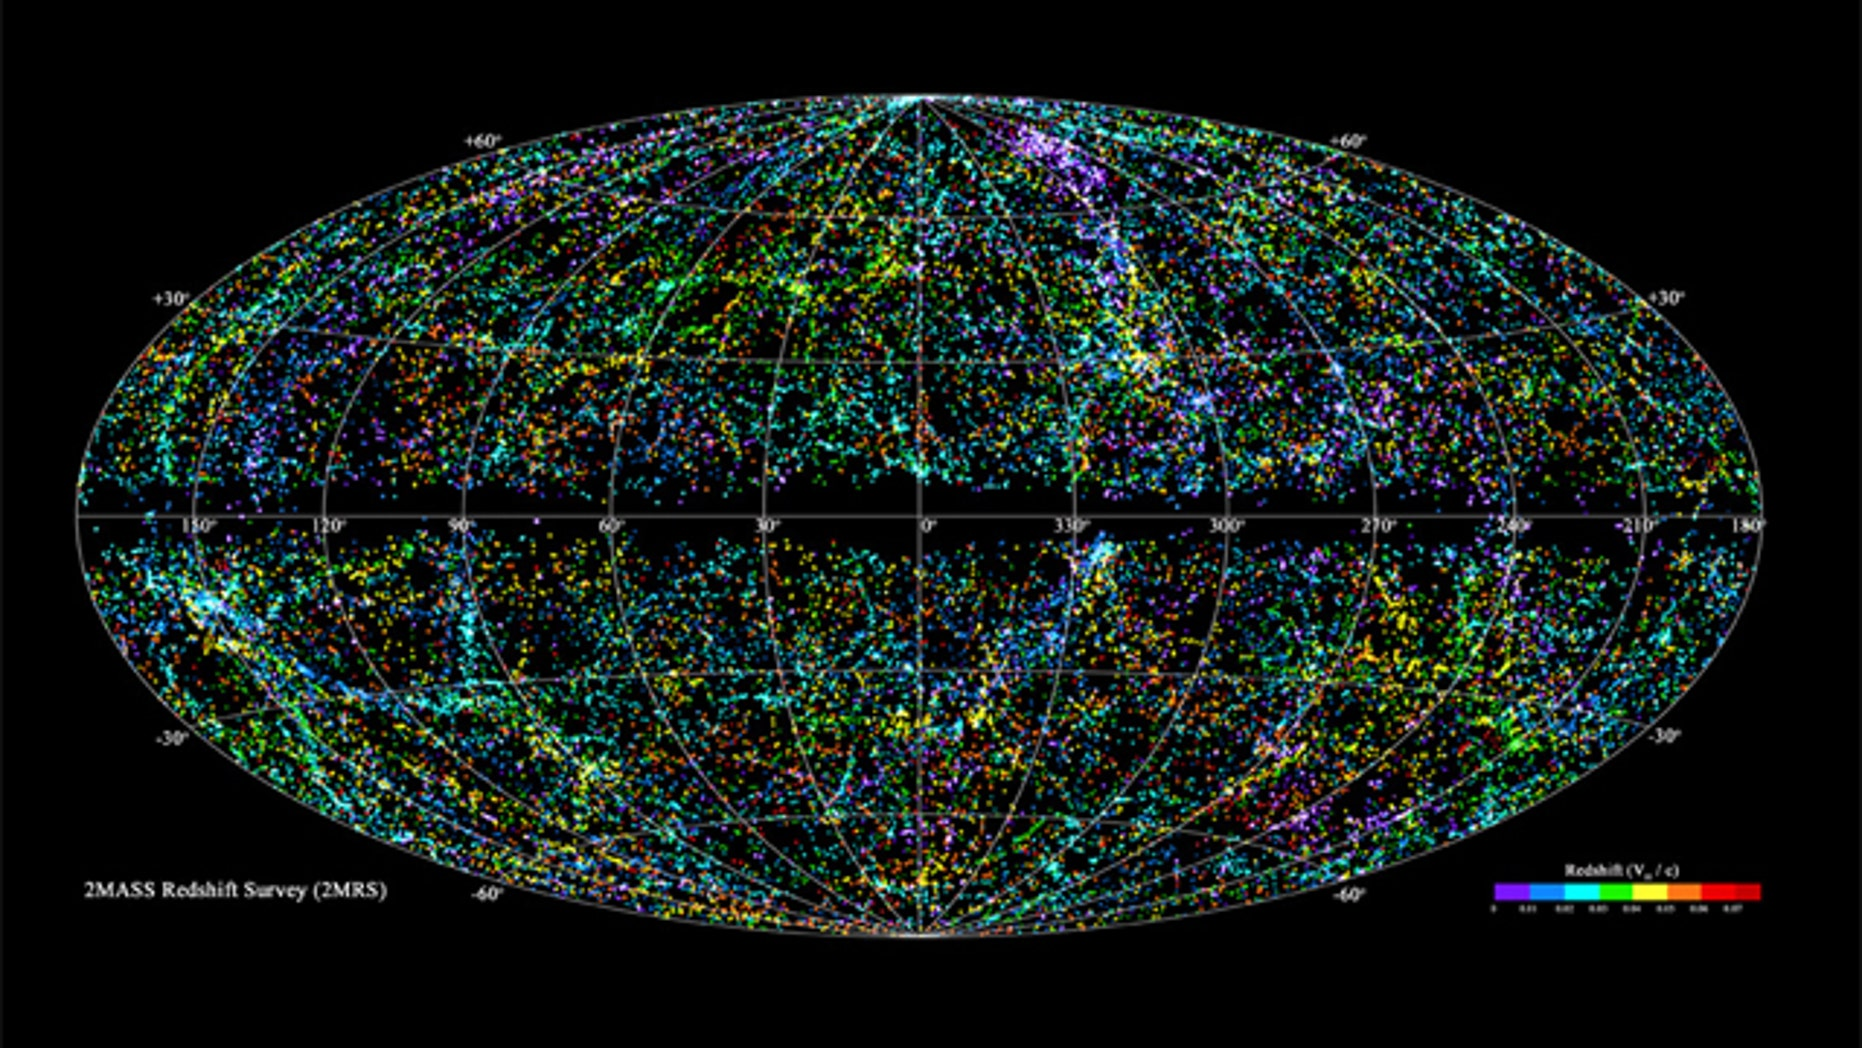 The 2MASS Redshift Survey (2MRS) has catalogued more than 43,000 galaxies within 380 million light-years from Earth (z